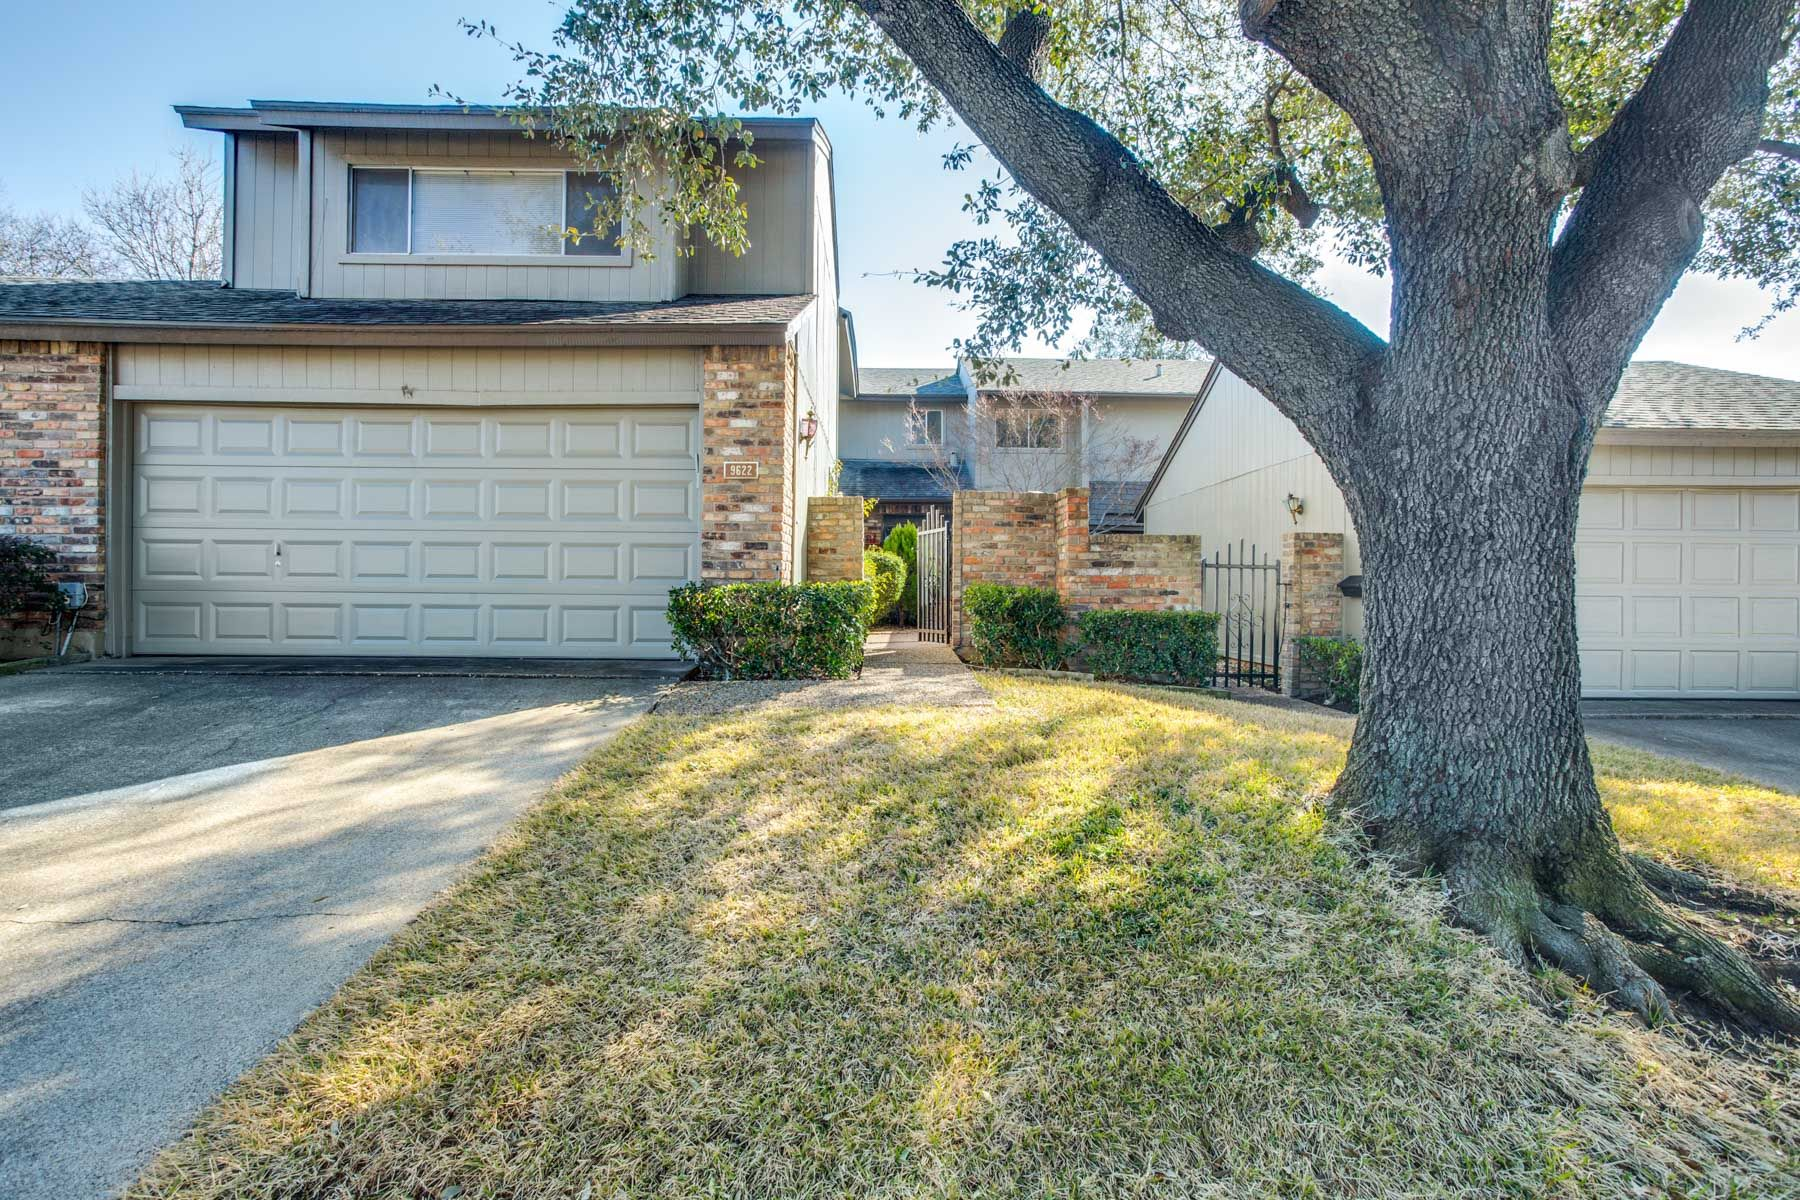 Townhouse for Sale at Lake Highlands Traditional Townhome 9622 Highland View Drive, Dallas, Texas, 75238 United States